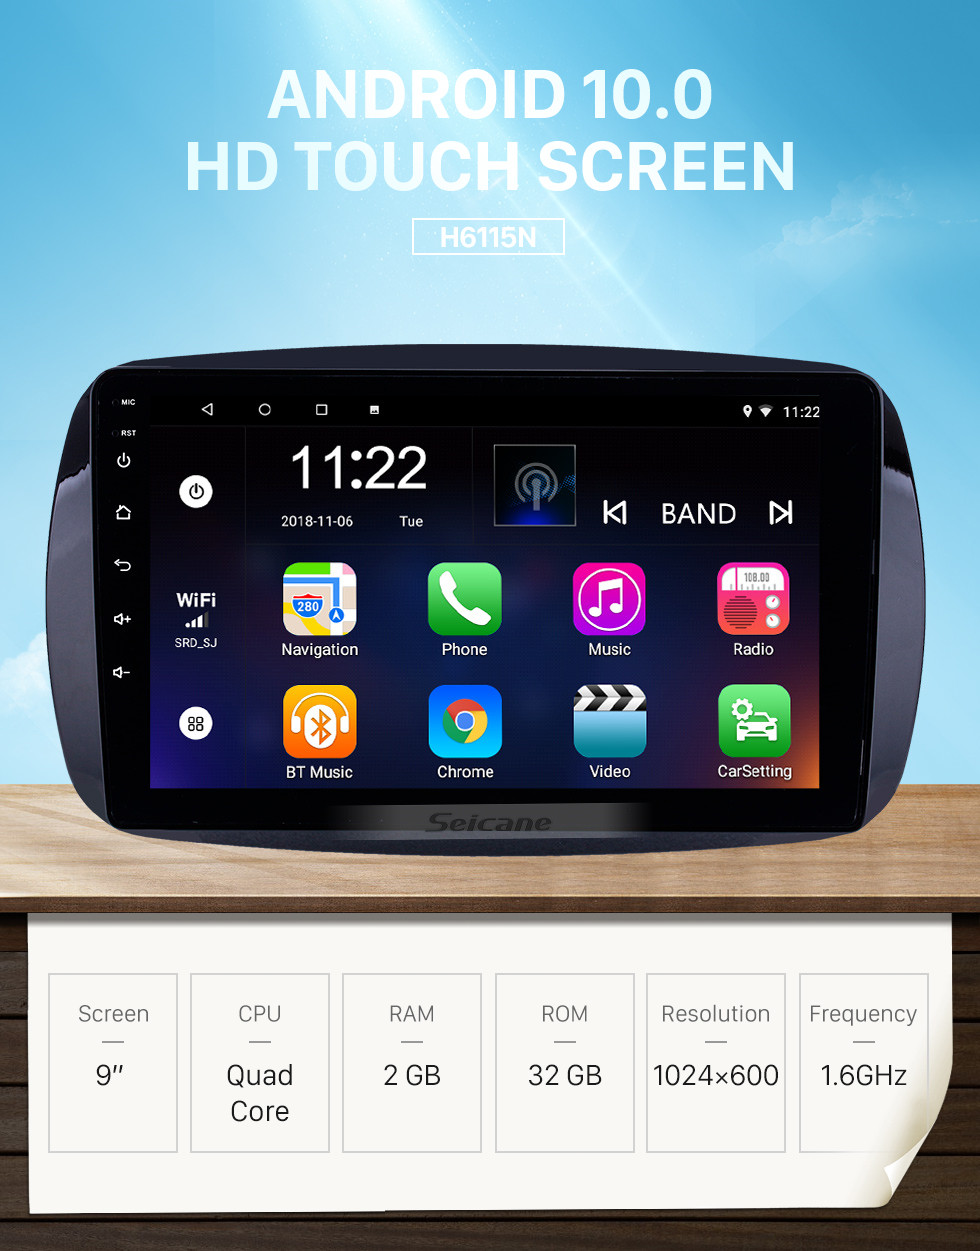 Seicane HD Touchscreen 9 inch Android 10.0 GPS Navigation Radio for 2016 Mercedes Benz Smart with Bluetooth AUX support DVR Carplay OBD Steering Wheel Control